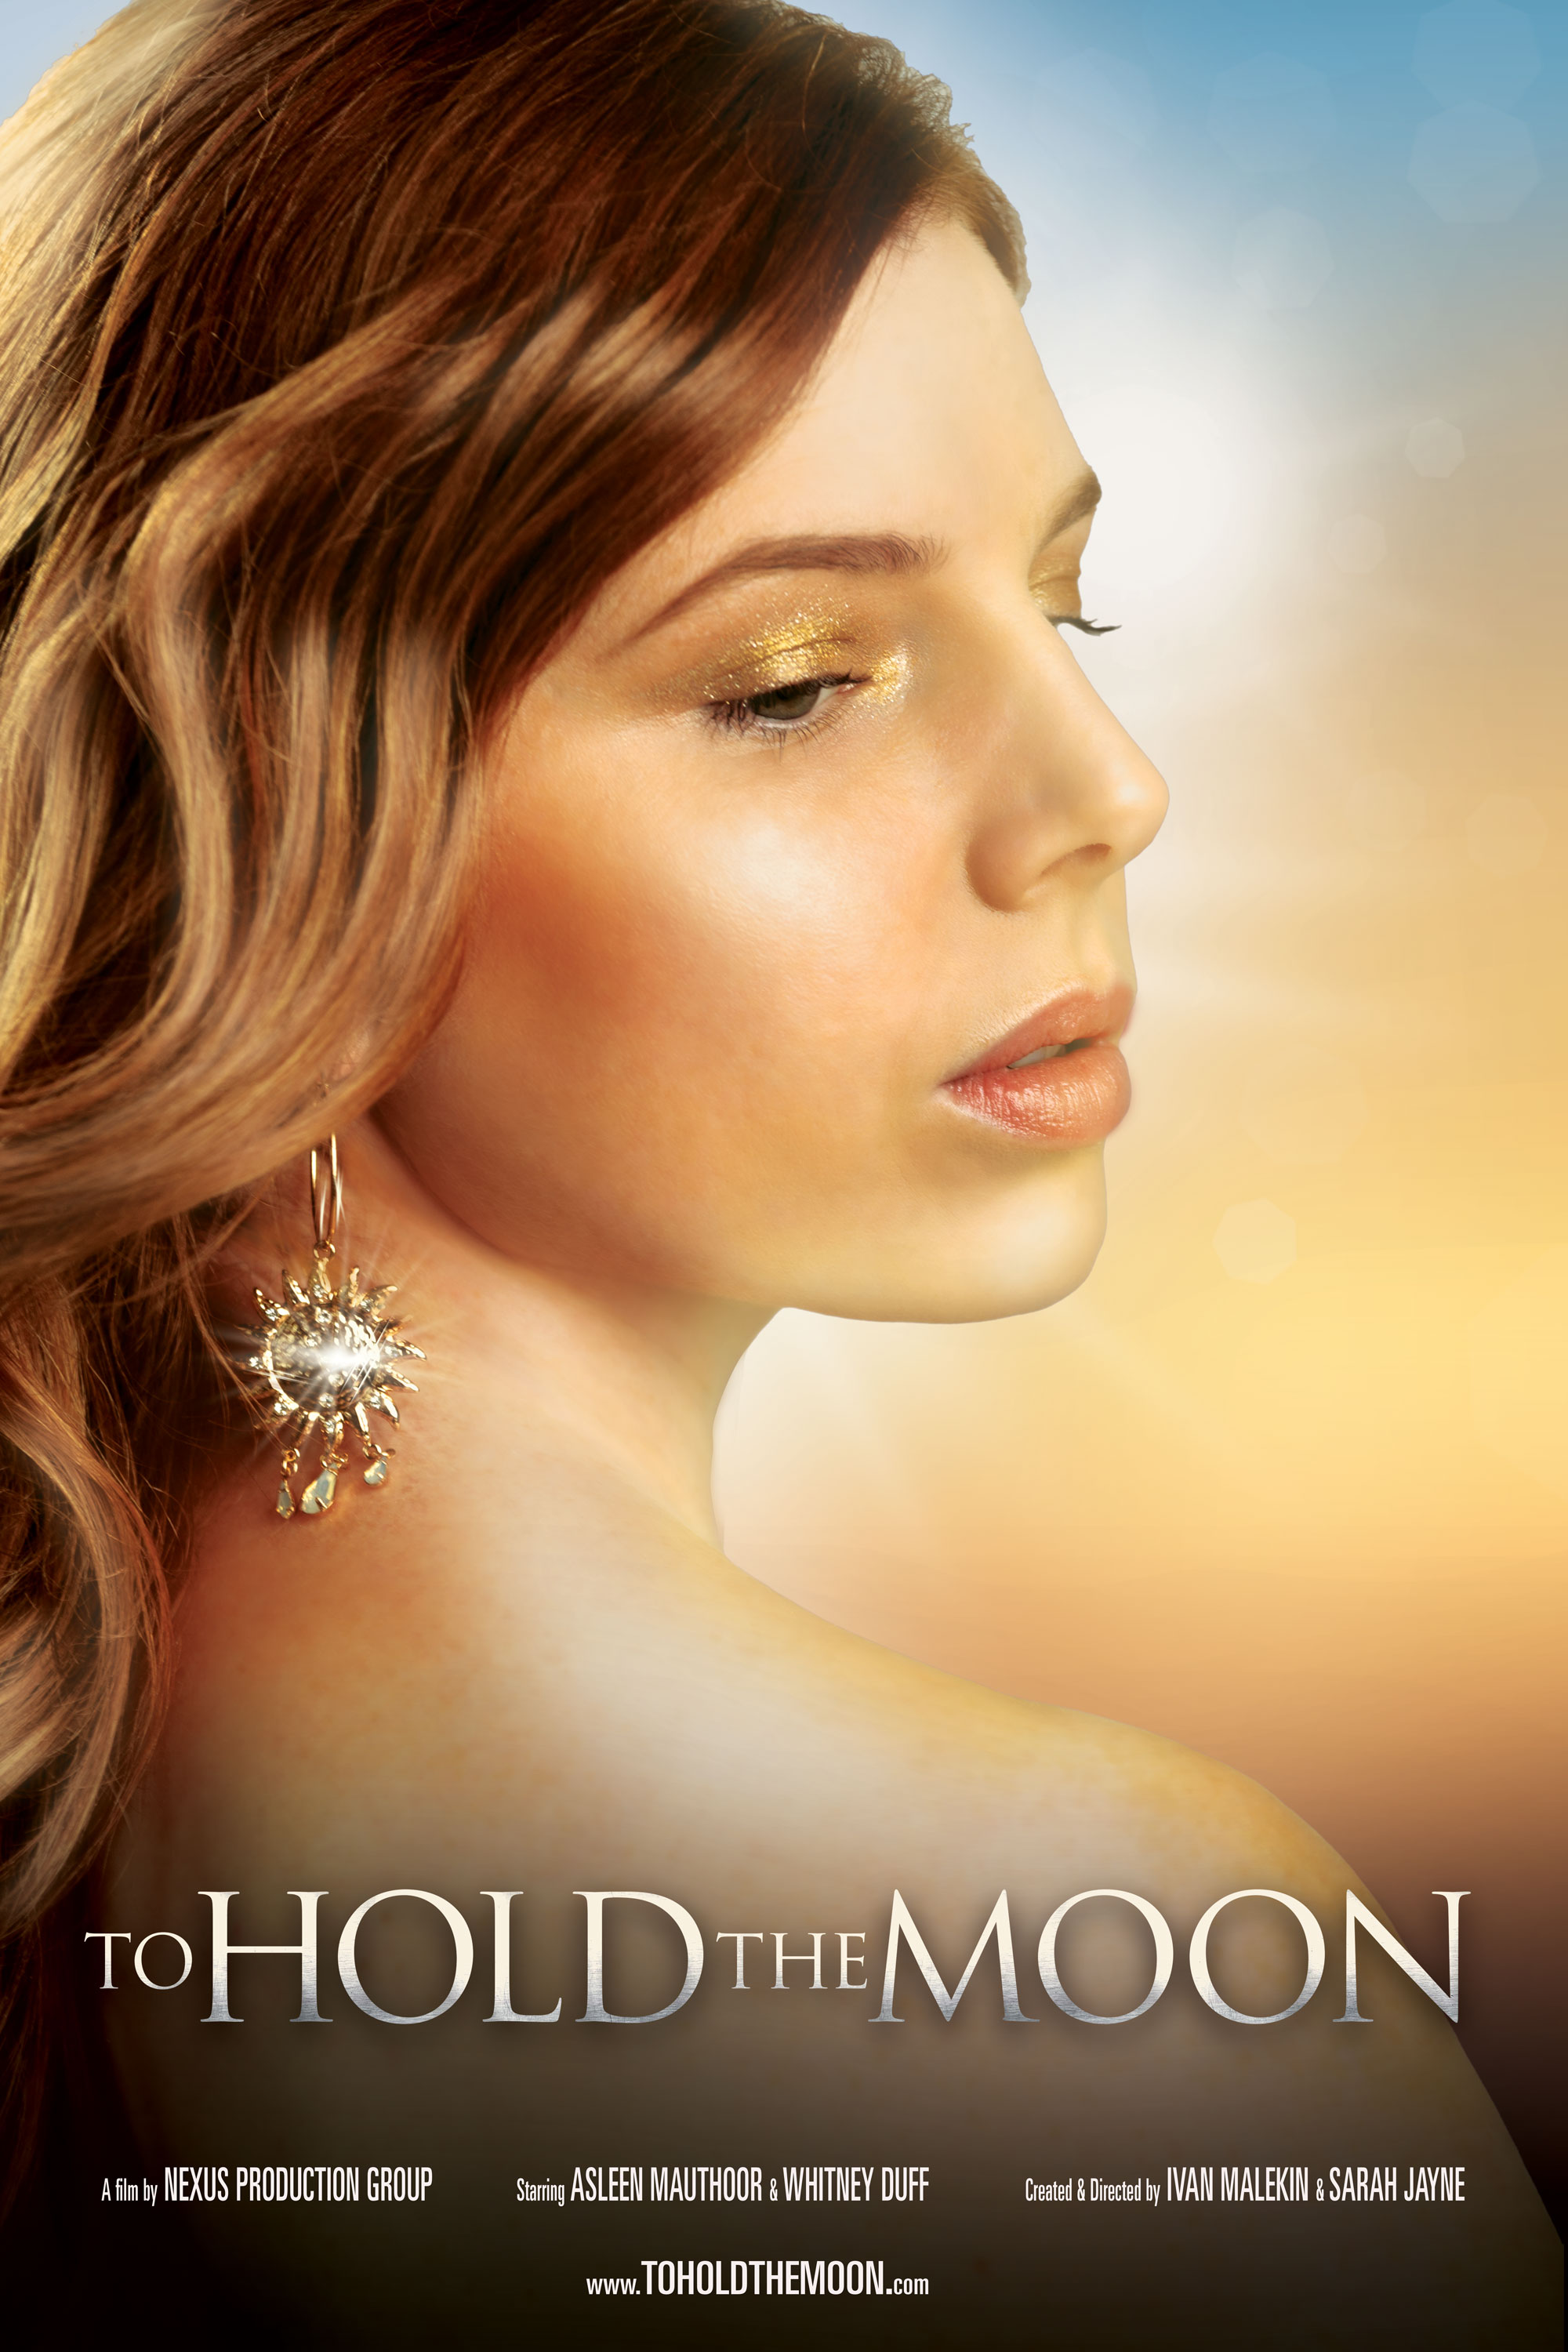 To-Hold-The-Moon-Teaser-2_3_EditWeb.jpg